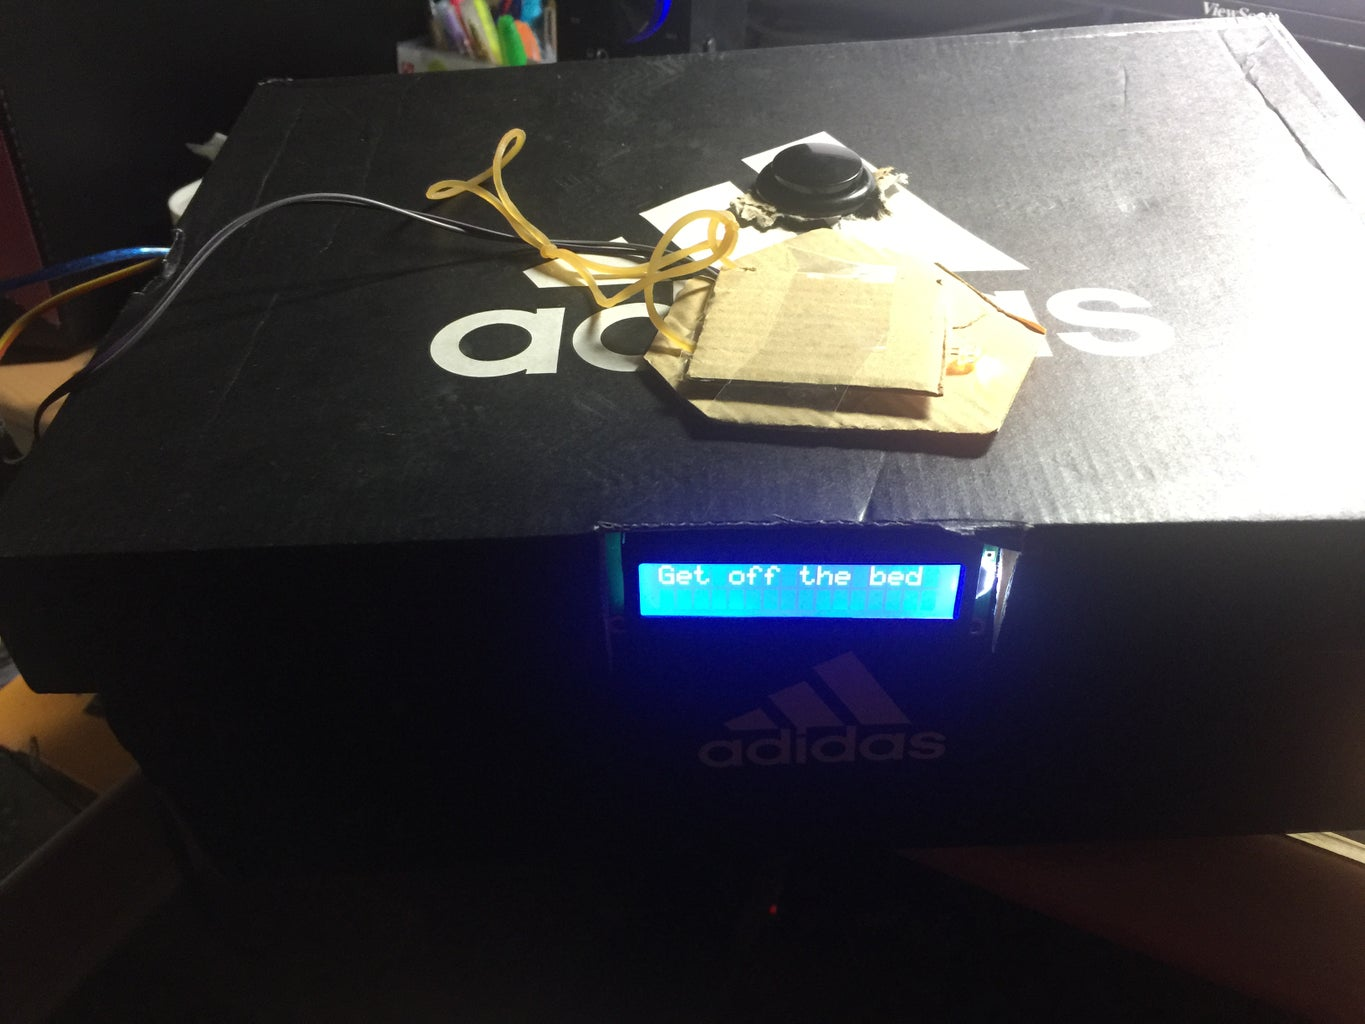 Arduino Get Off Bed System